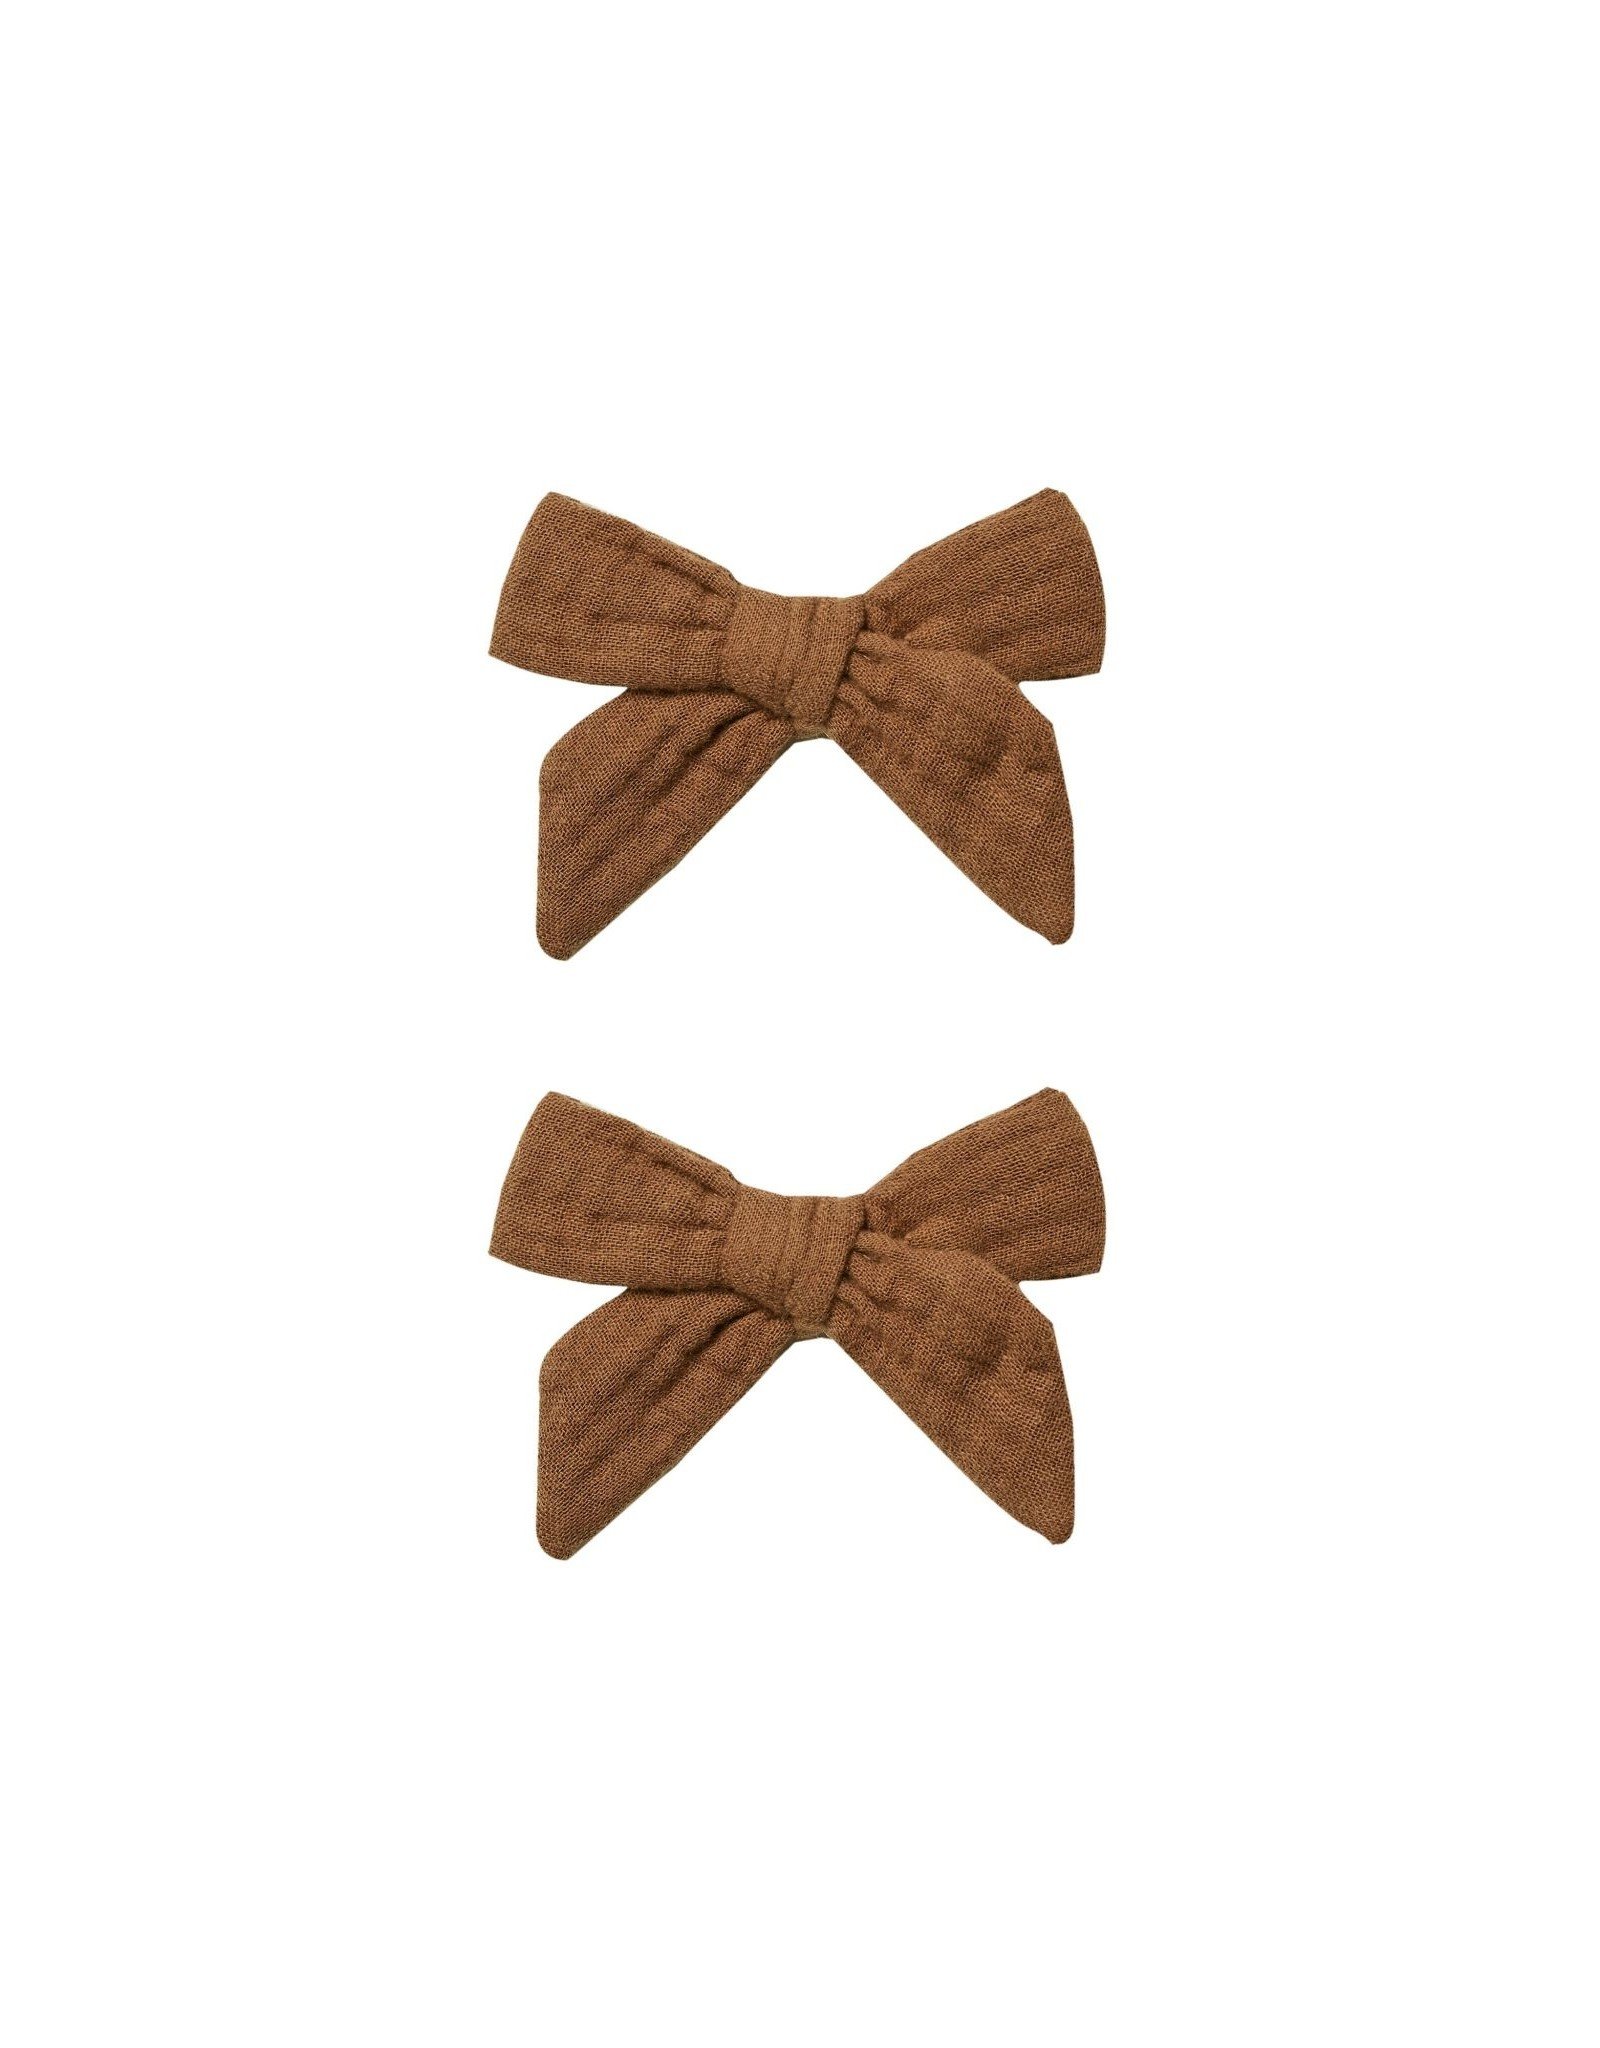 Rylee and Cru bow clip set- rust